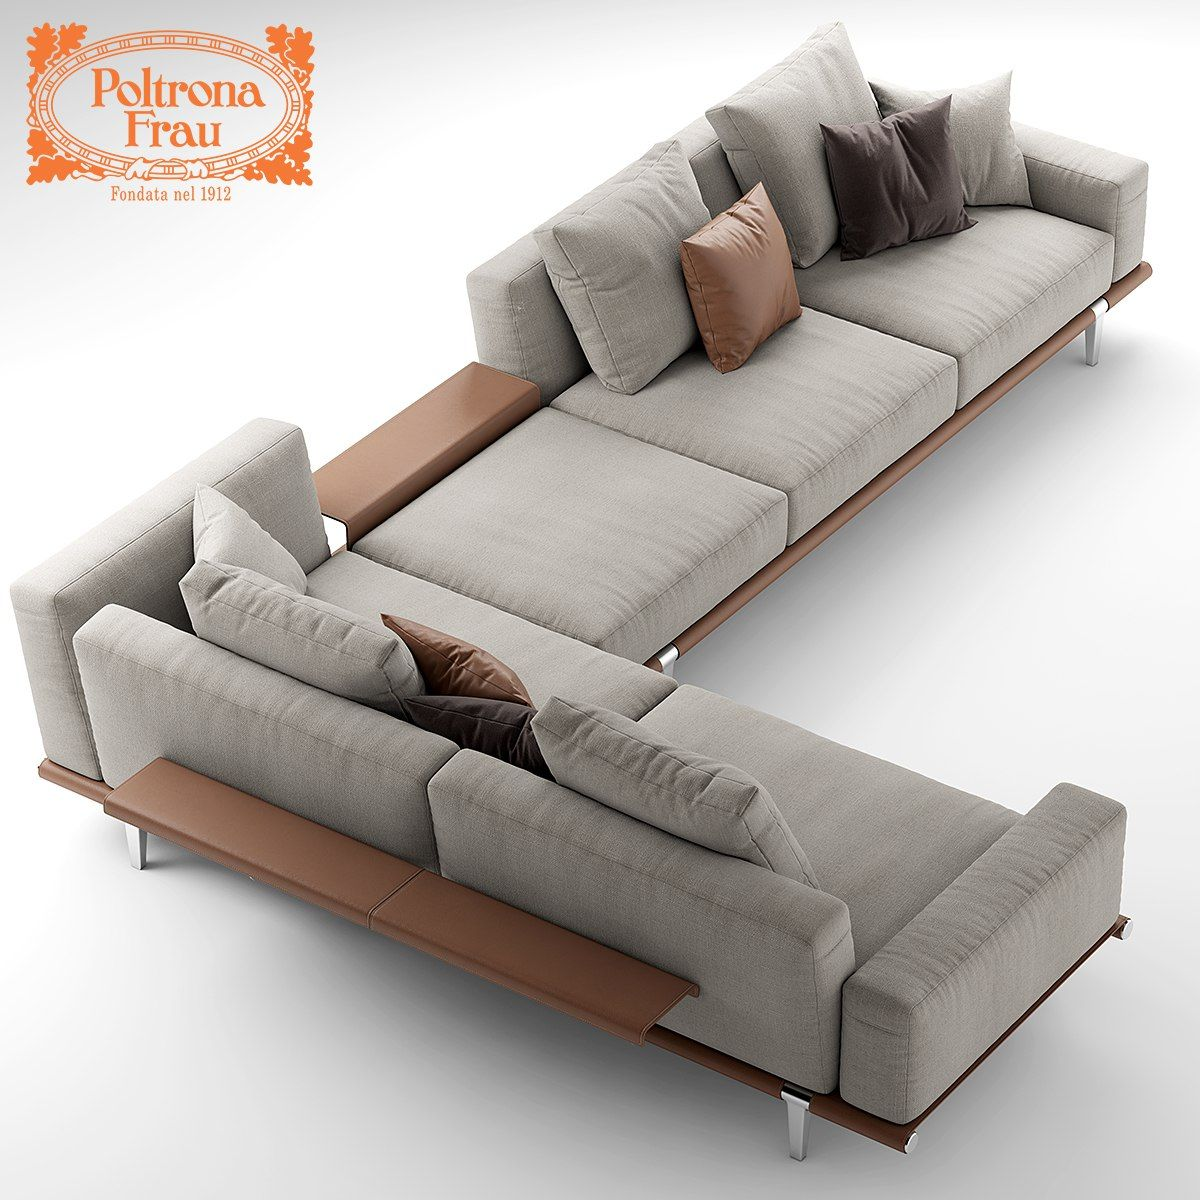 big sofa ecke beautiful big sofa dortmund lovely big sofa ecke frisch big sofa poco with big. Black Bedroom Furniture Sets. Home Design Ideas